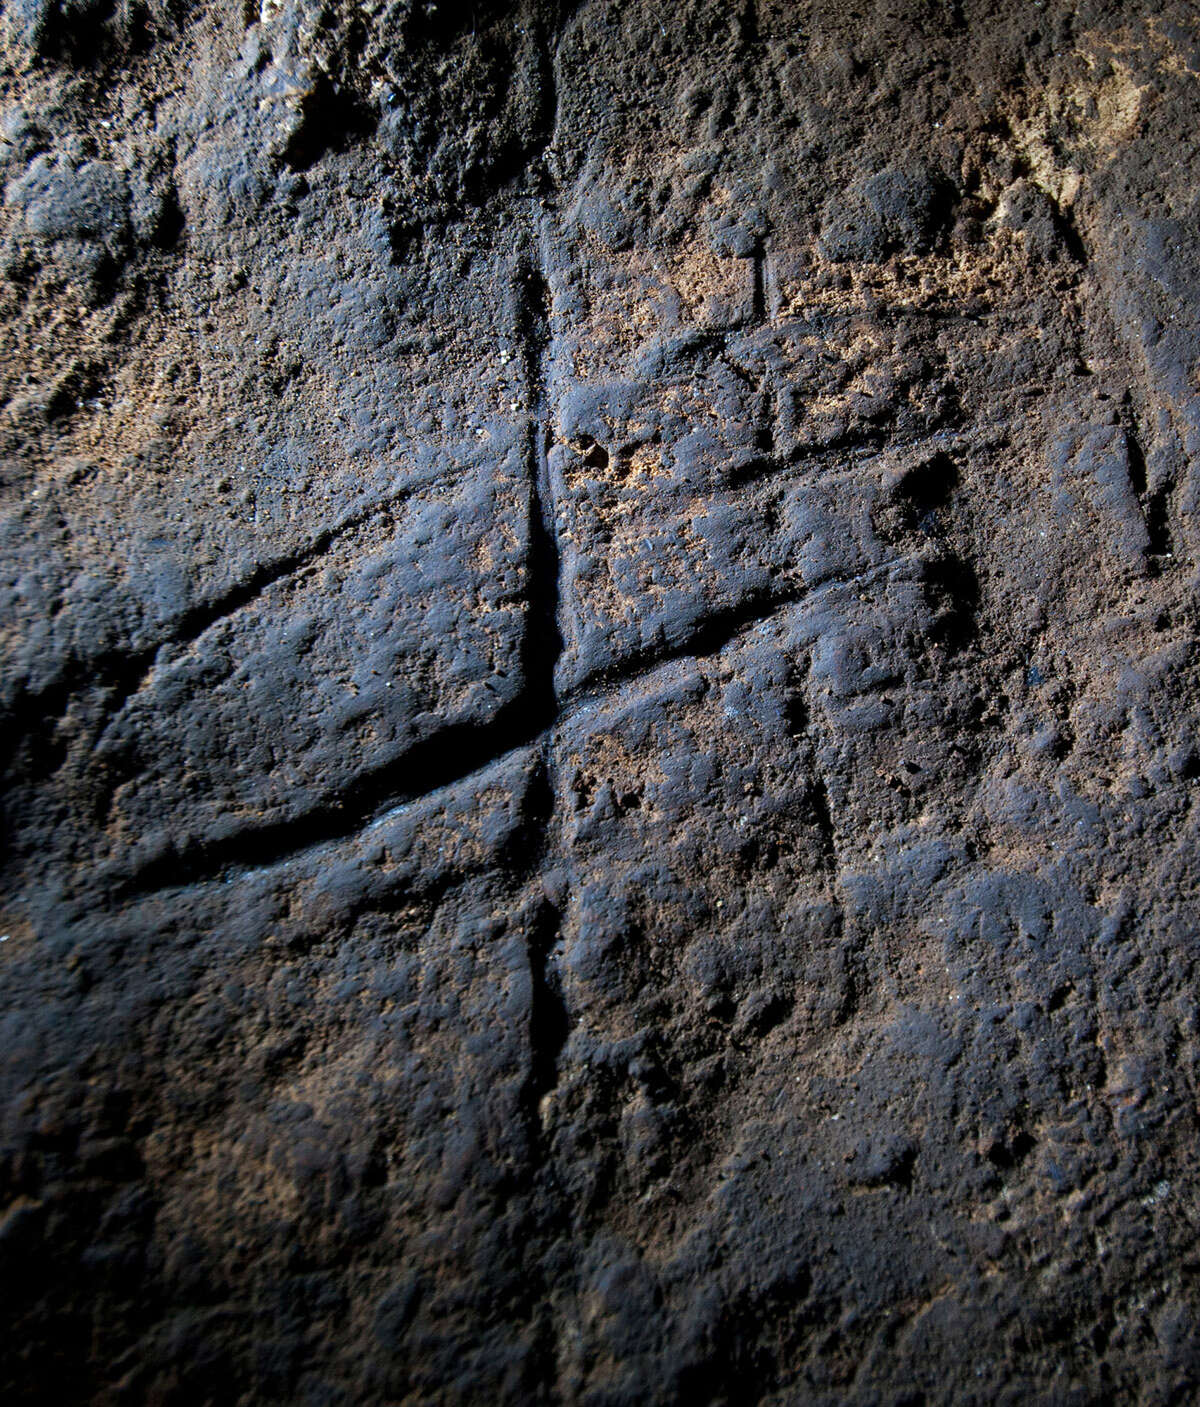 This undated image provided by Journal shows a Neanderthal rock engraving at Gorham's Cave in Gibraltar. The series of lines scratched into the rock could be proof that Neanderthals were more intelligent and creative than previously thought.AP story: Study claims cave art made by Neanderthals